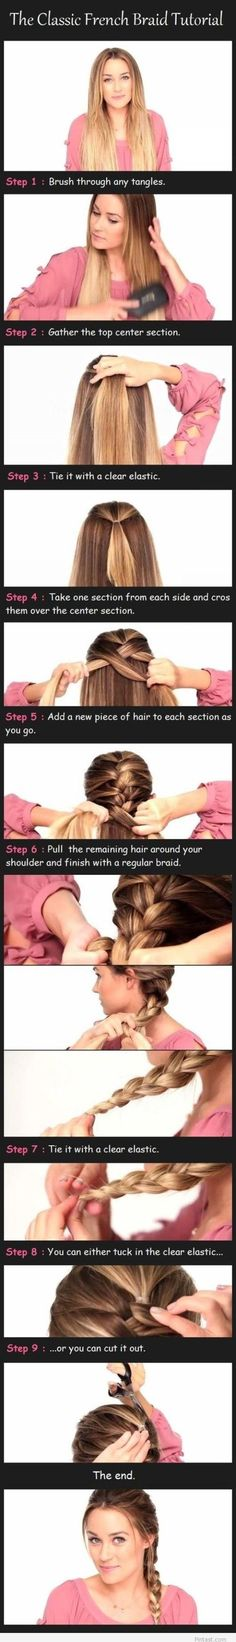 French braid,thanks for the visual tutor.. lets see if i can actually do this